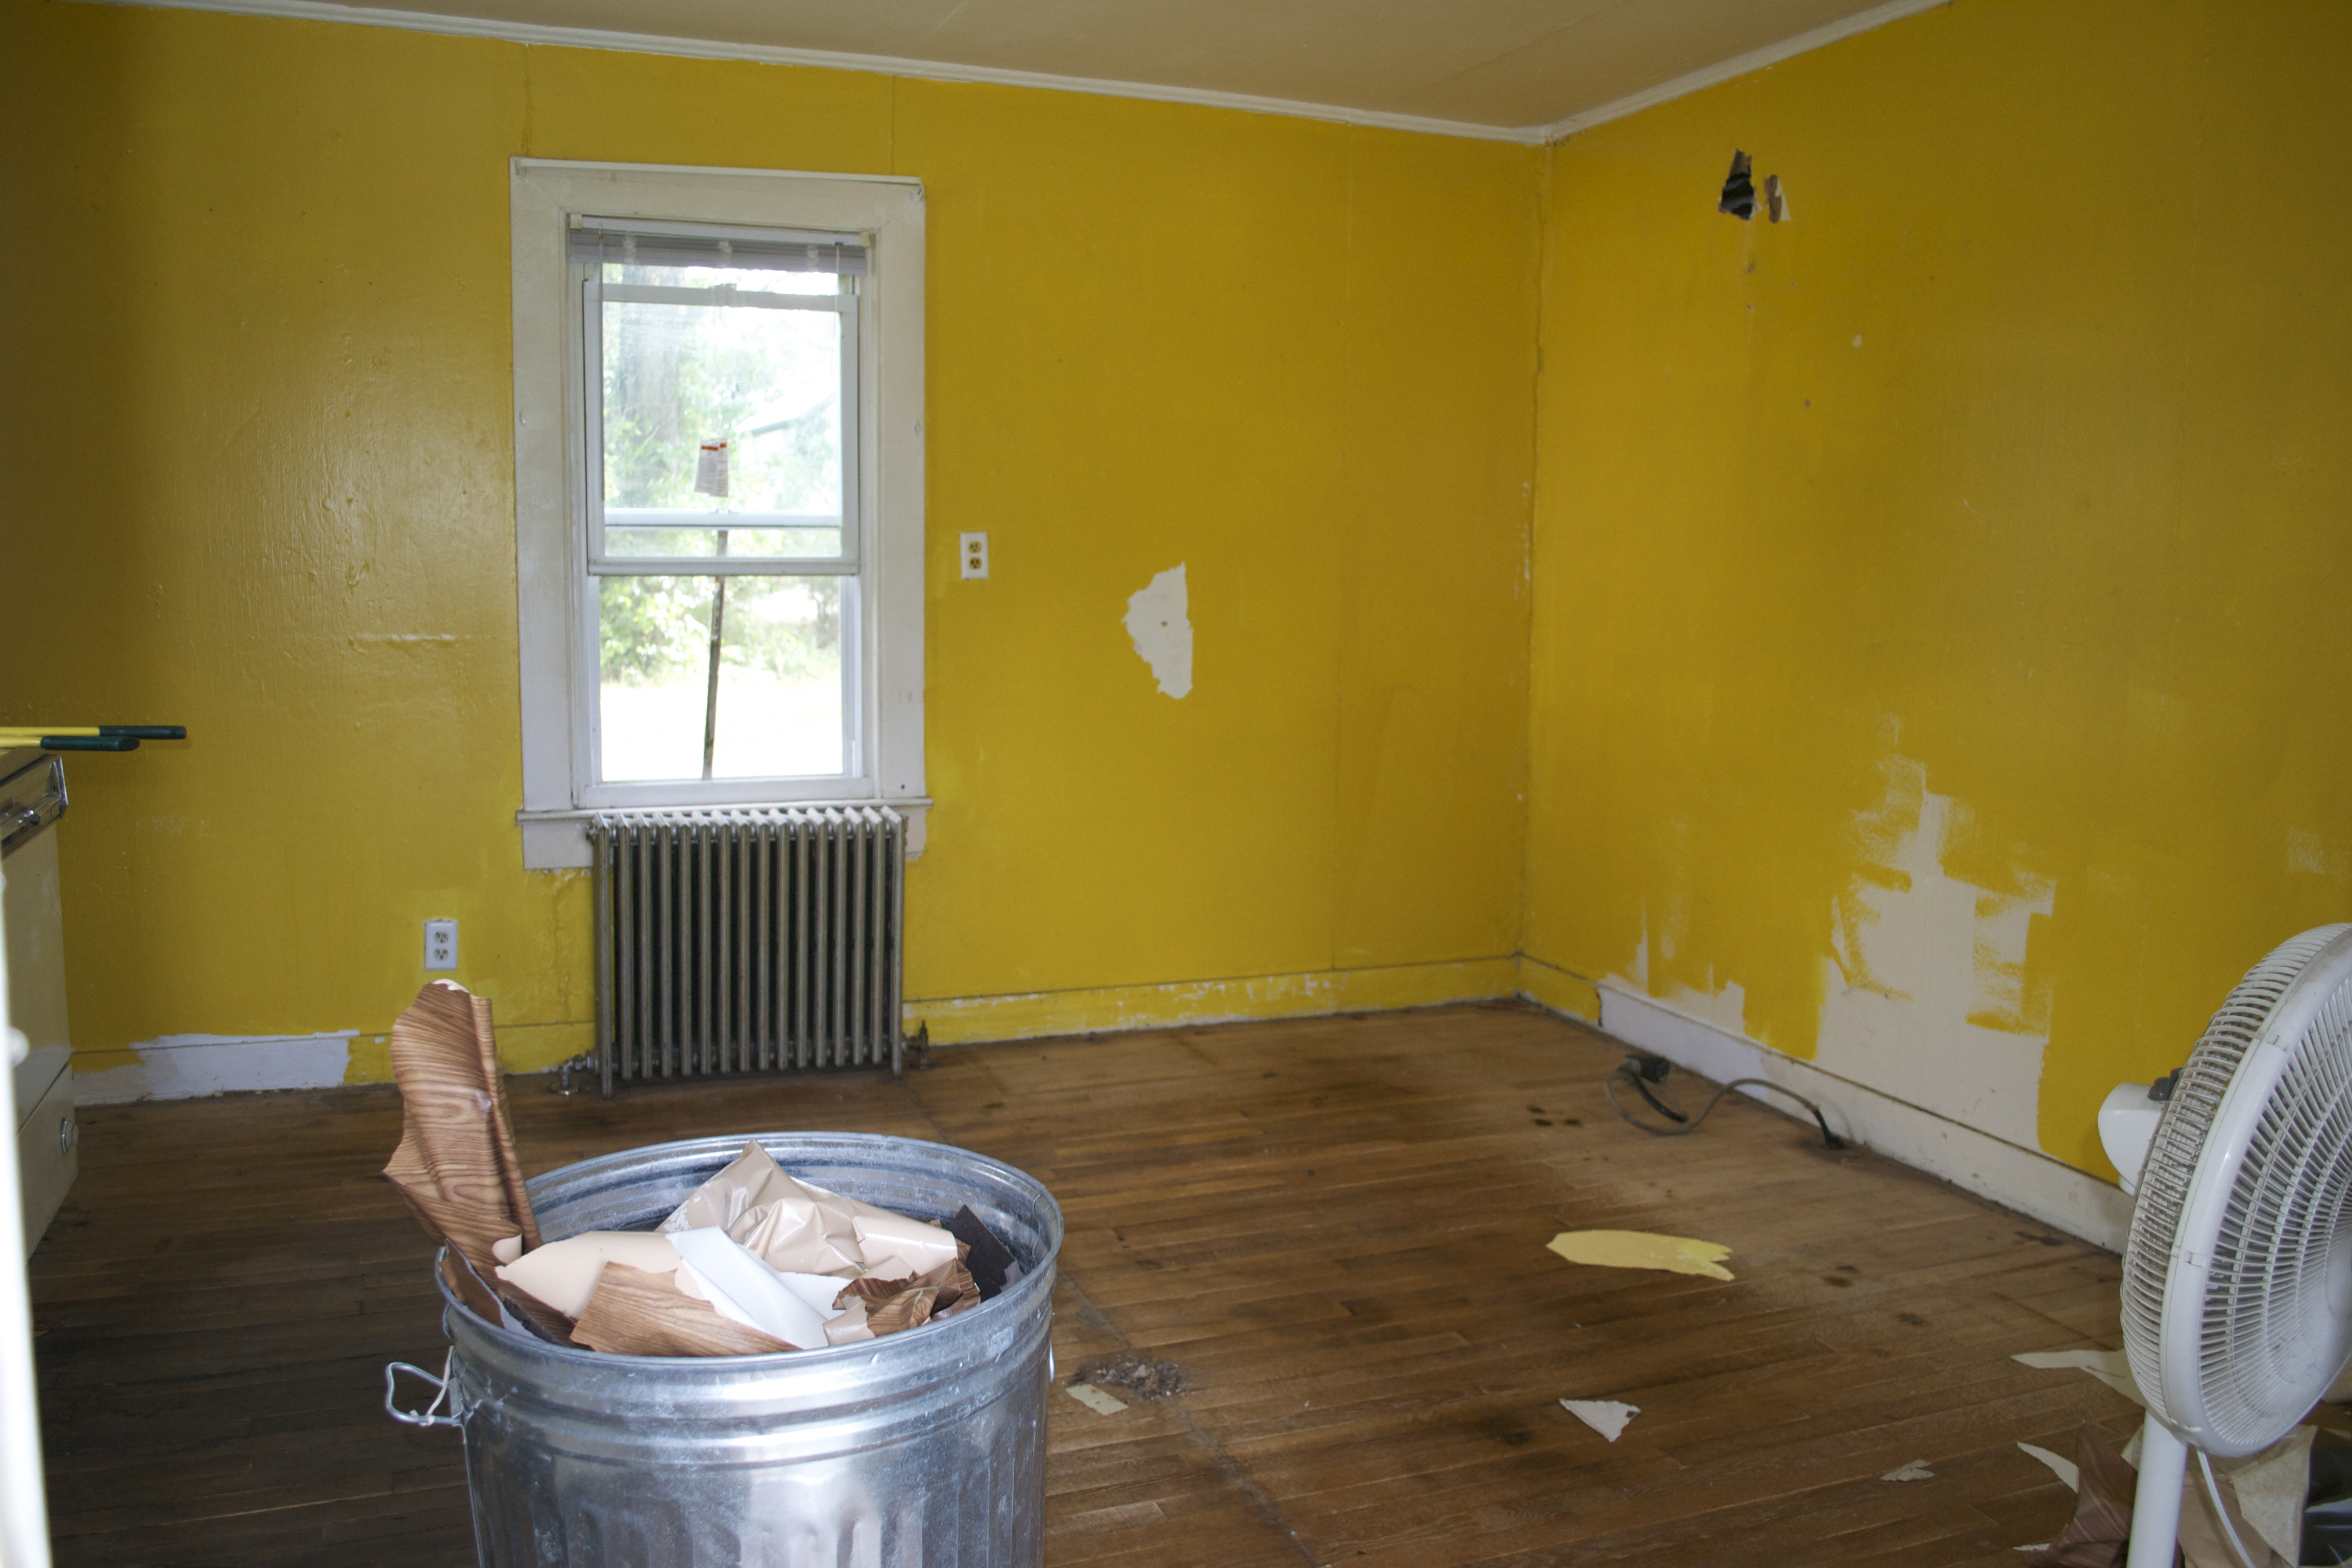 house renovation | The Chartreuse Life